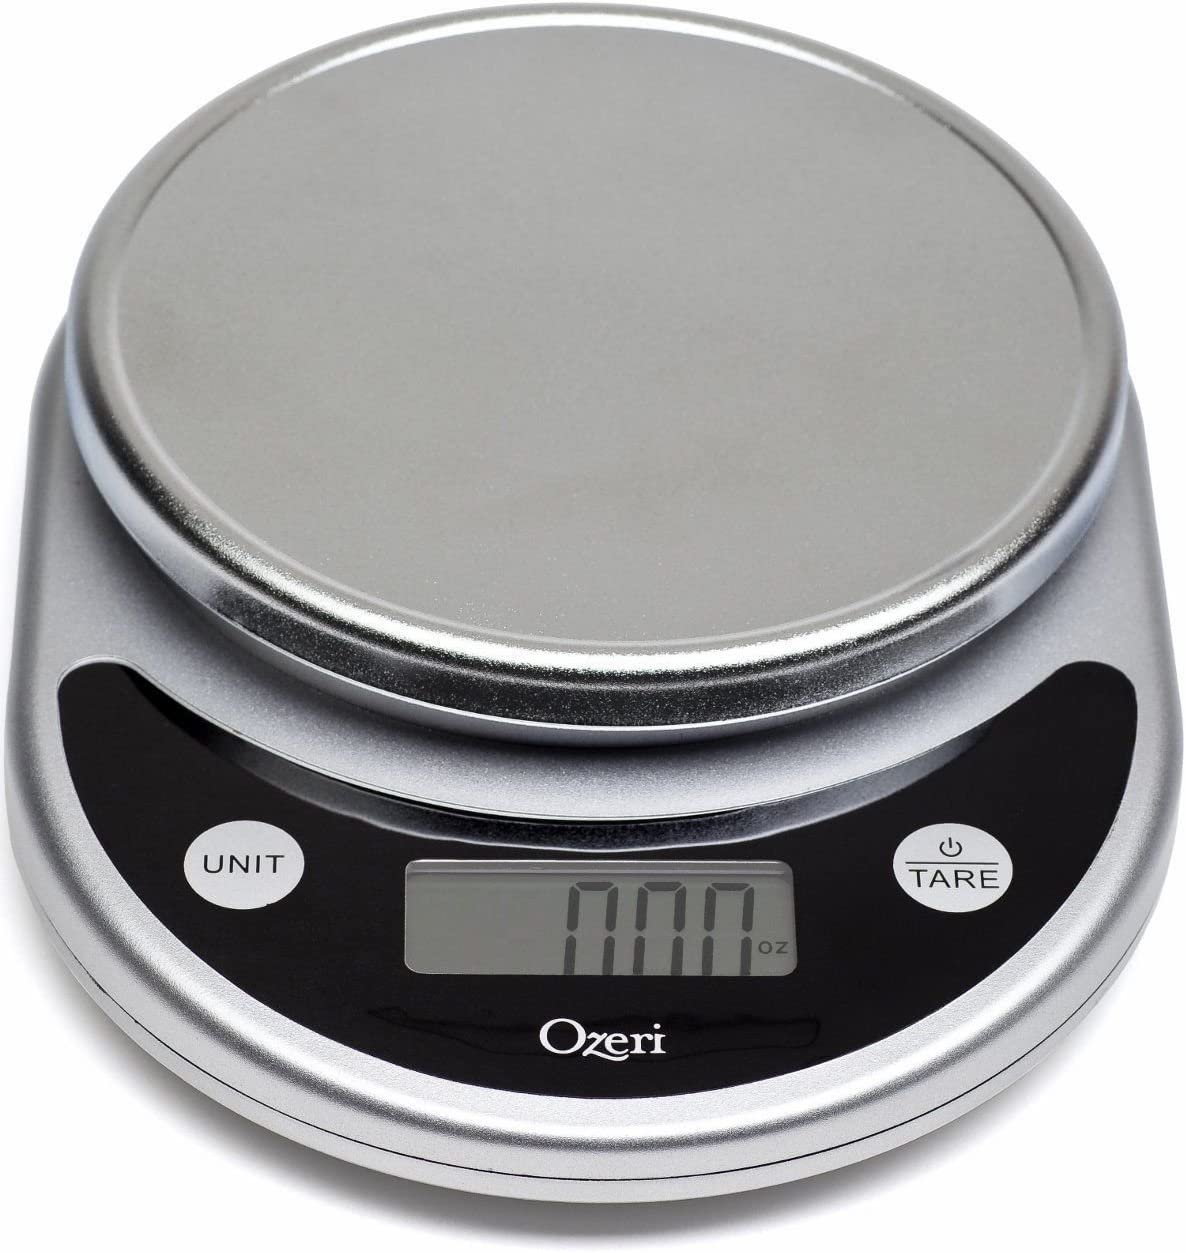 Ozeri ZK14-S Pronto Digital Multifunctional Kitchen Food Scale